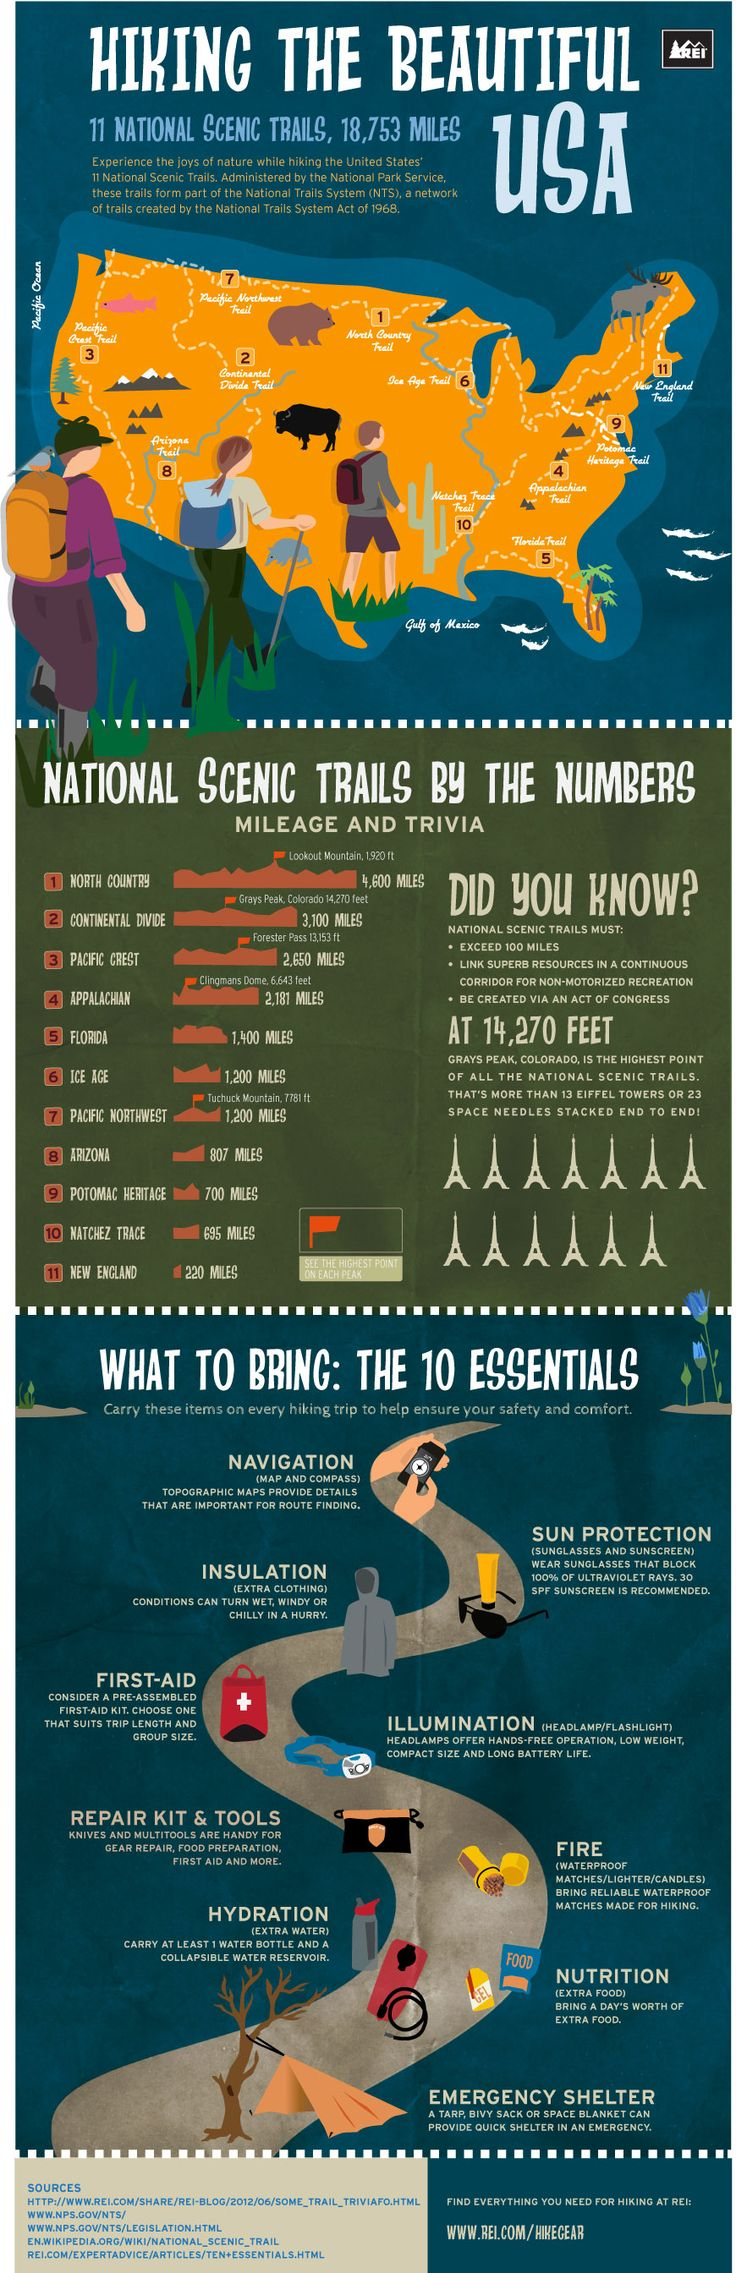 National Scenic trails http://blog.rei.com/wp-content/uploads/2014/09/sm3051983-hiking-infographic0807-870.jpg